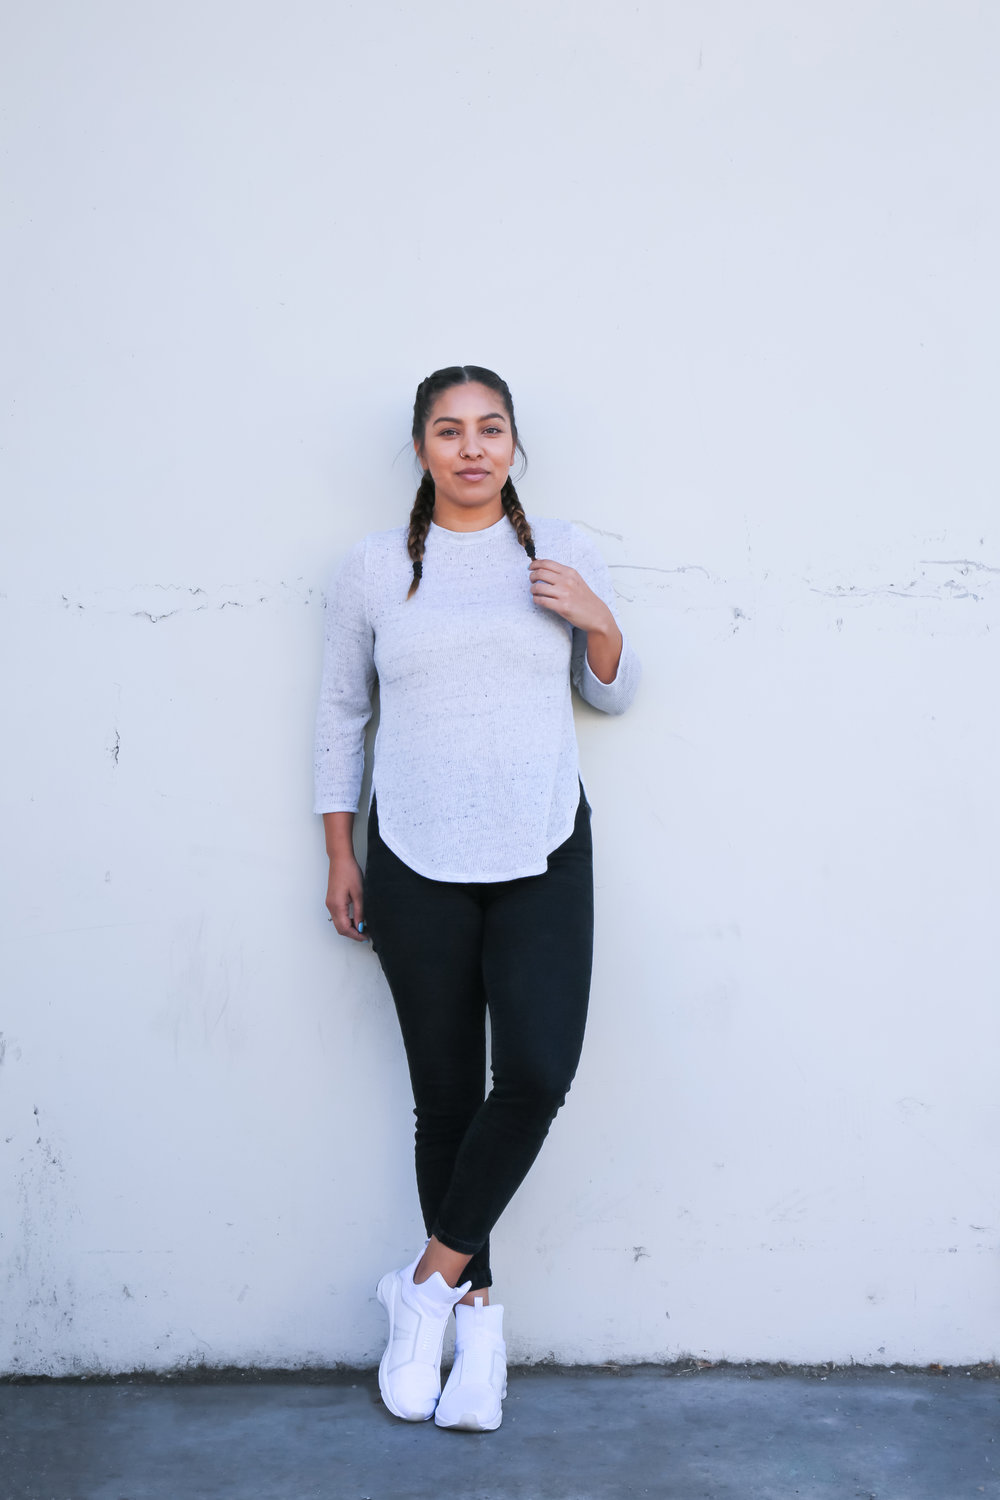 How to wear t shirt and leggings